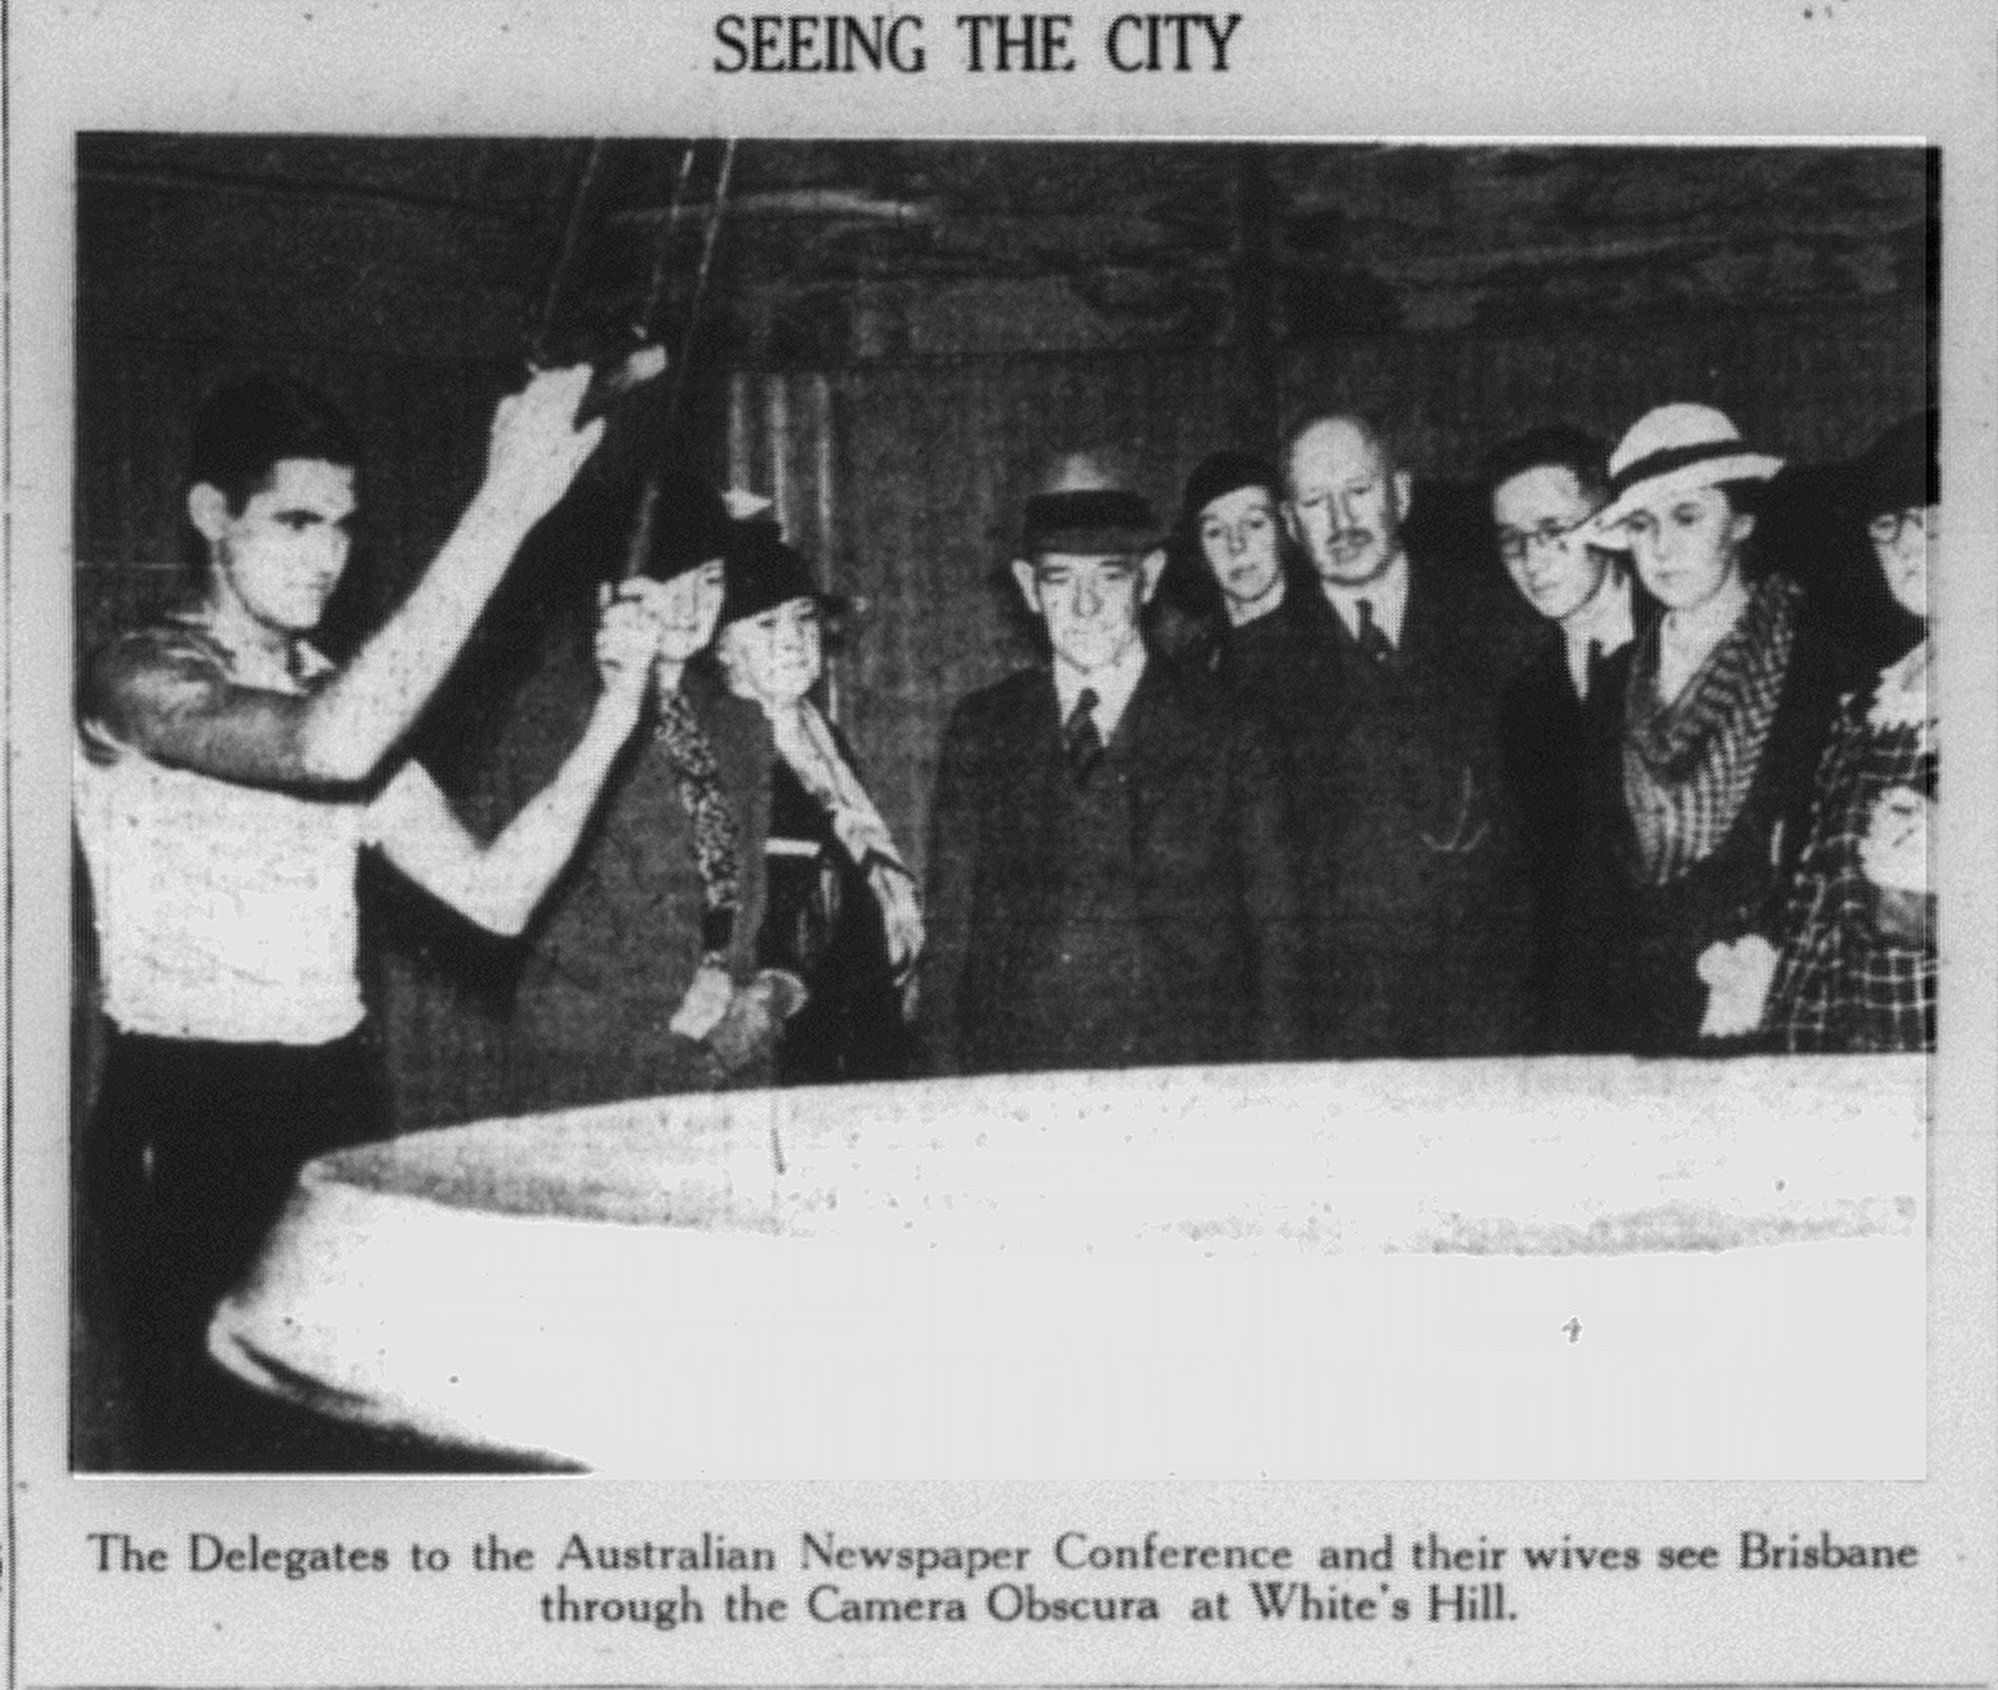 'Seeing the City, The Delegates to the Australian Newspaper Conference and their wives see Brisbane through the Camera Obscura at White's Hill', The Telegraph, 1 June 1935 p13.